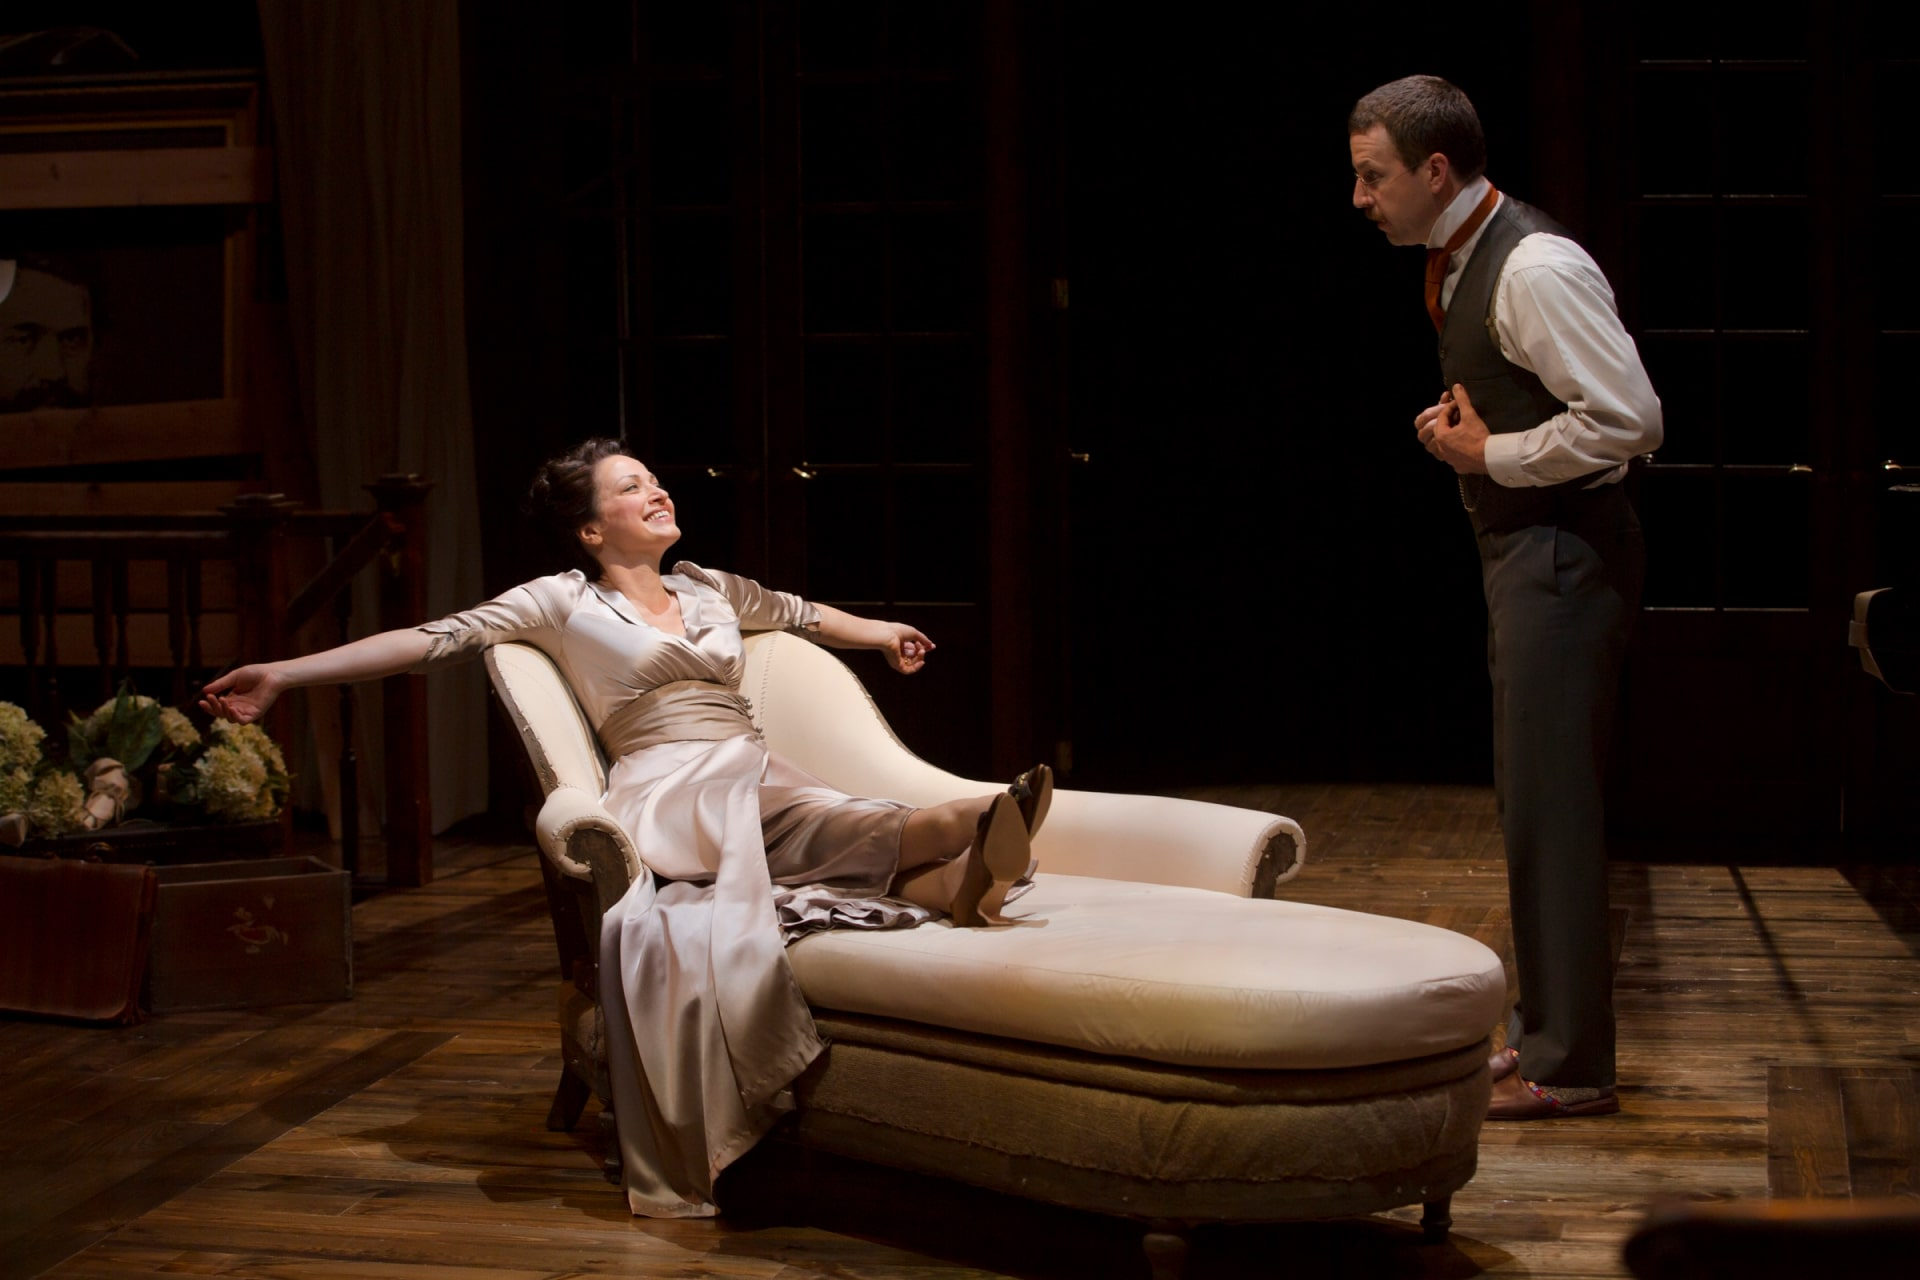 Woman in white silk gown lounges laughing on chaise with man in waistcoat standing beside.